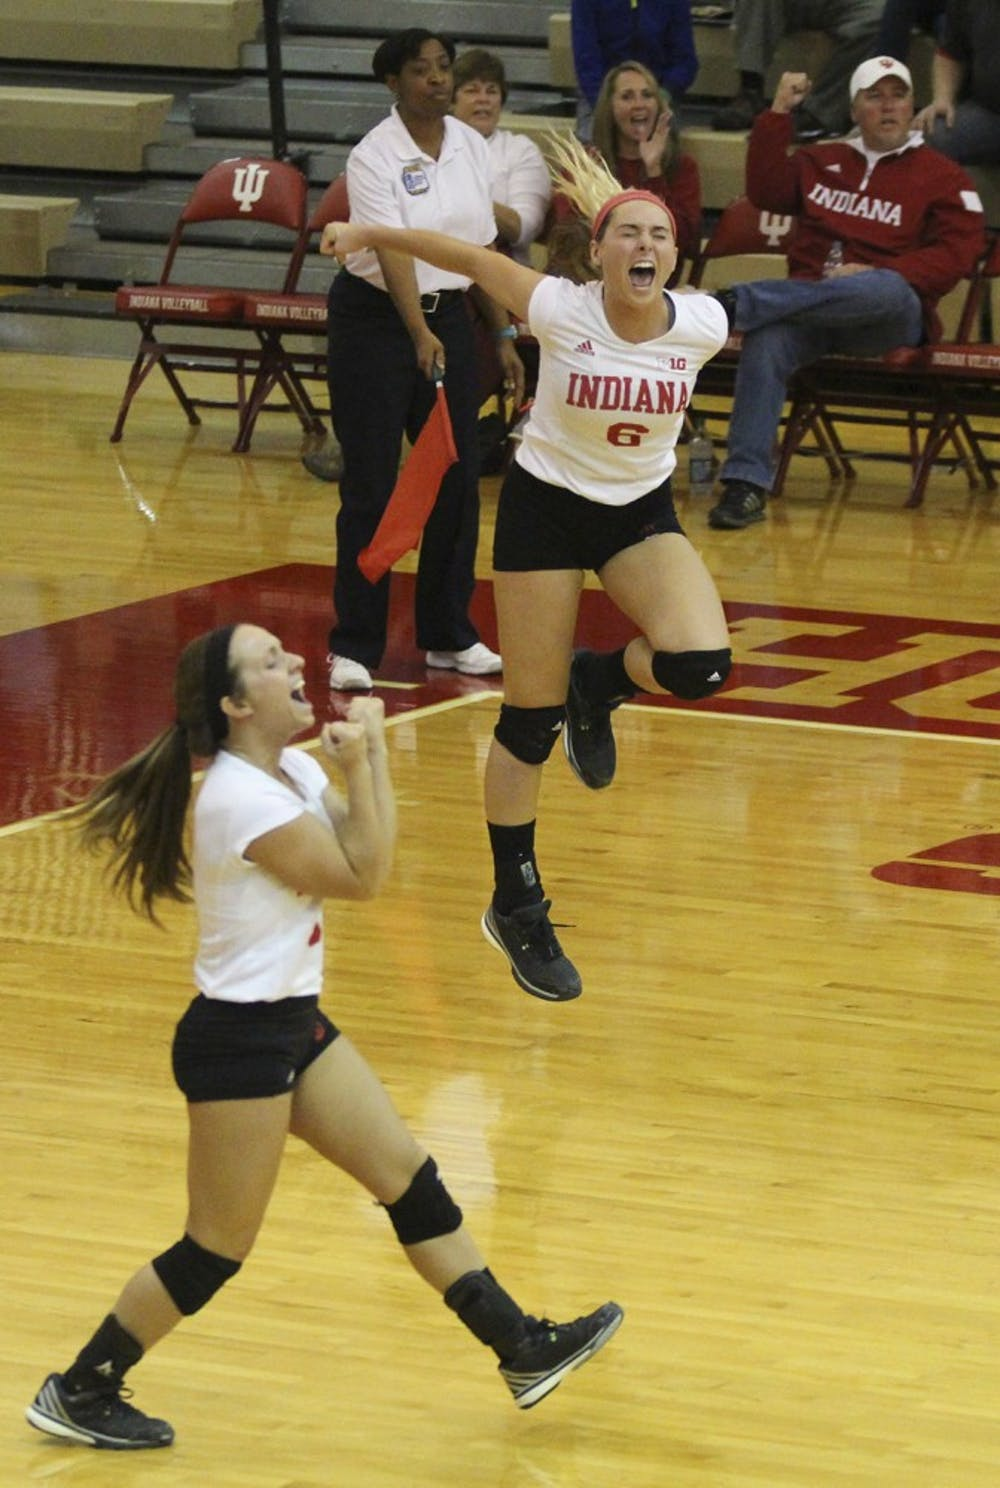 Senior defensive specialist Kyndall Merritt (left) and junior outside hitter Taylor Lebo (right) scream after the Hoosiers score a point on Saturday evening at the University Gym. Hoosiers fall 3 sets to 0 to No. 8 Nebrashka.